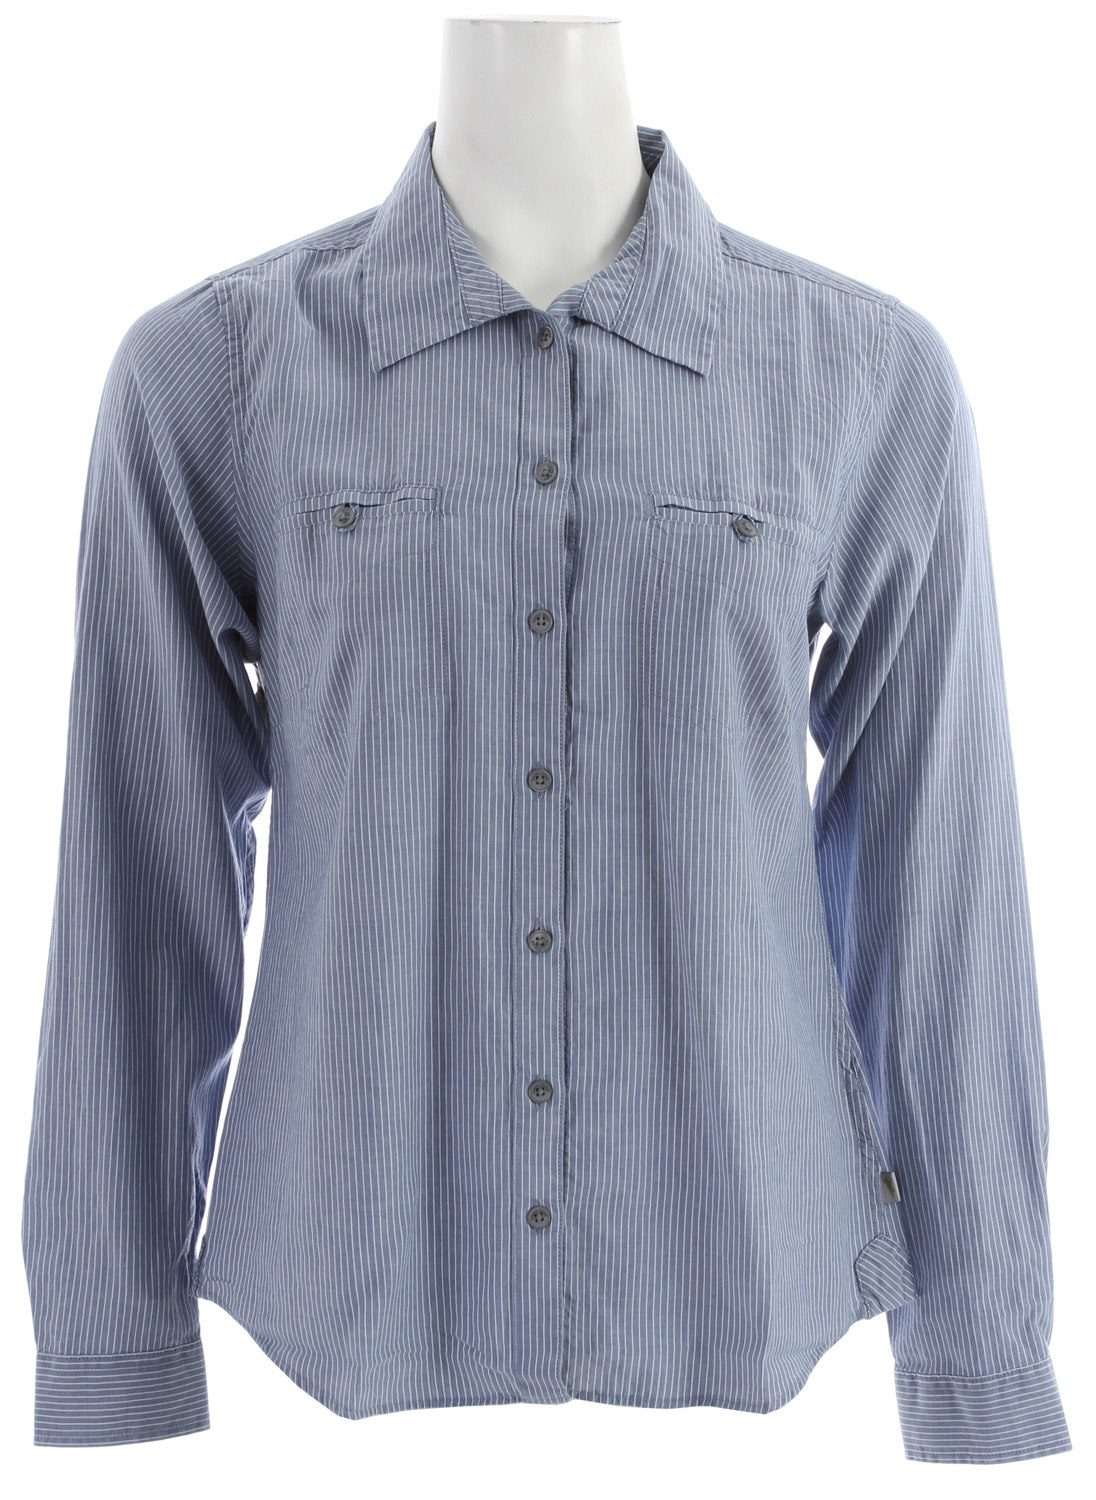 Toad & Co Sun Stripe L/S Shirt Lapis - $41.95